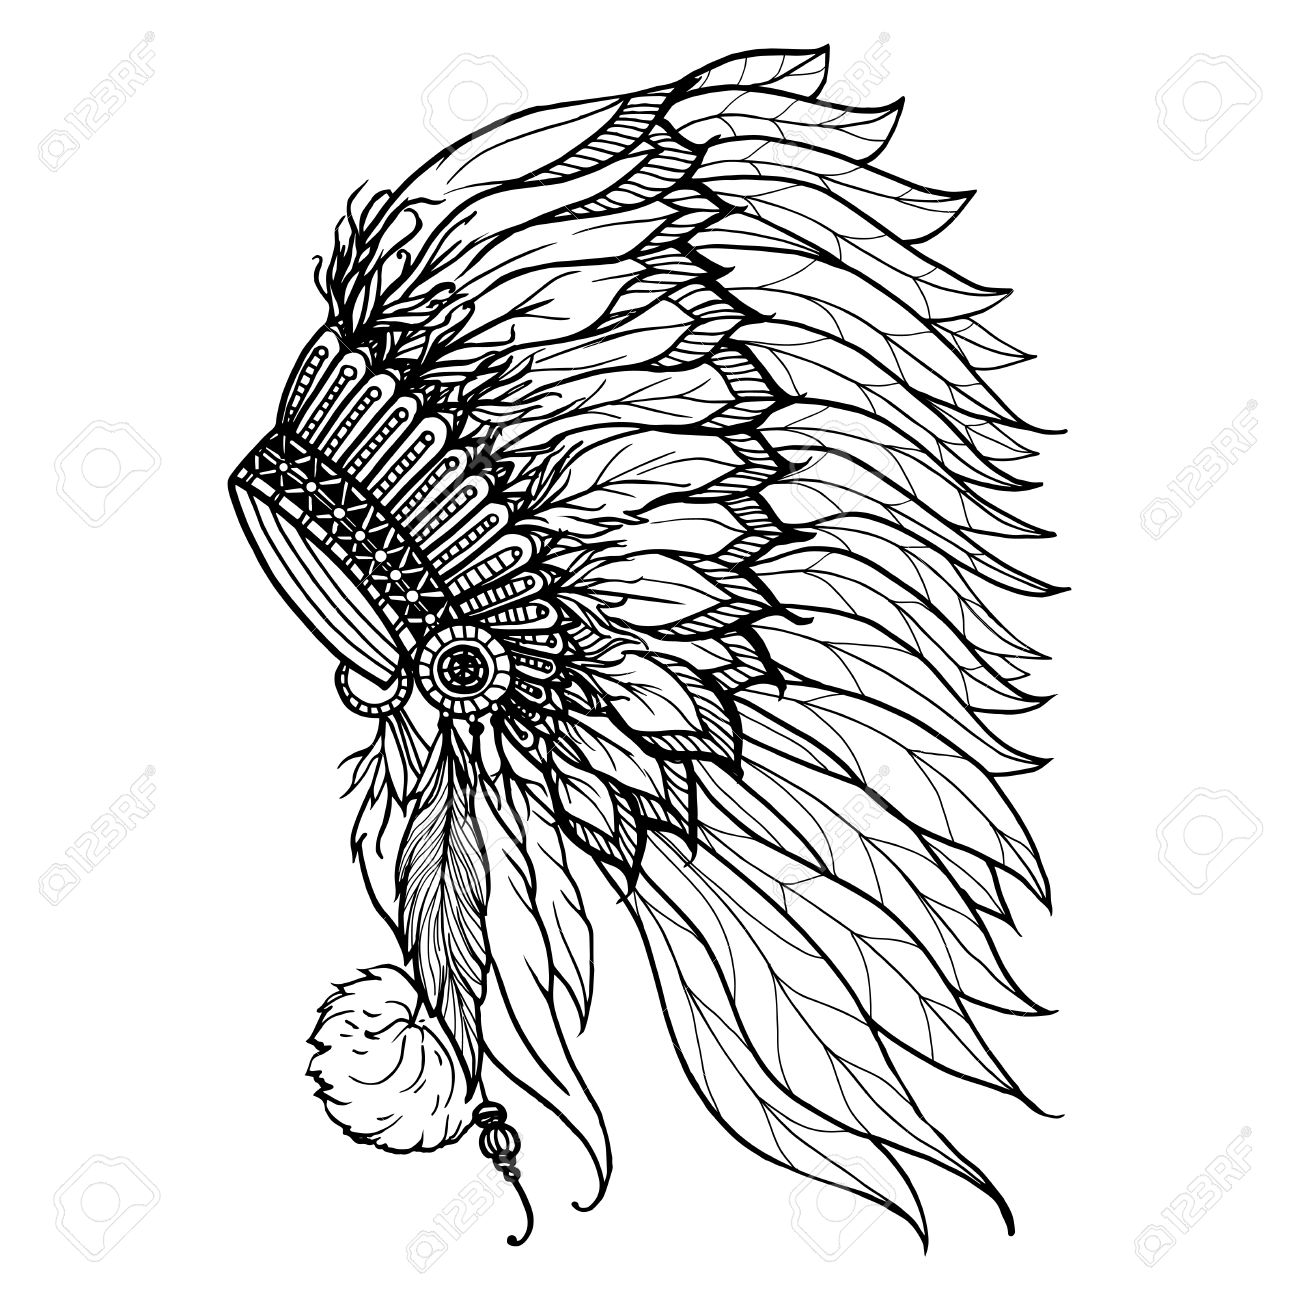 Doodle Headdress For Native American Indian Chief Isolated On ...